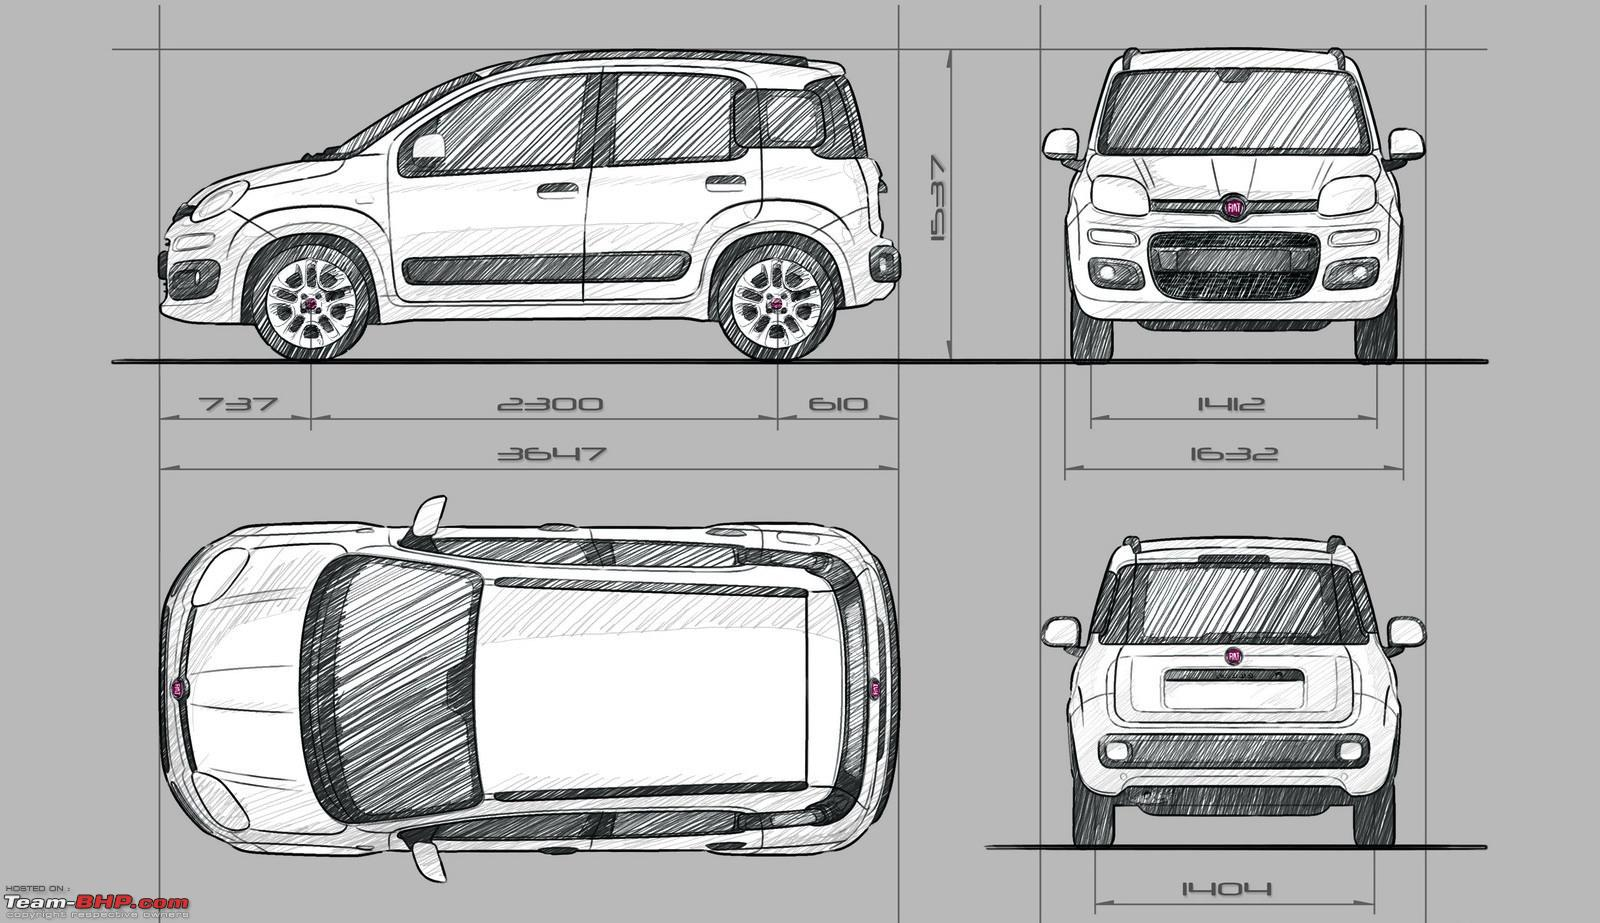 fiat panda hatchback 1 3 multijet page 2 team bhp. Black Bedroom Furniture Sets. Home Design Ideas